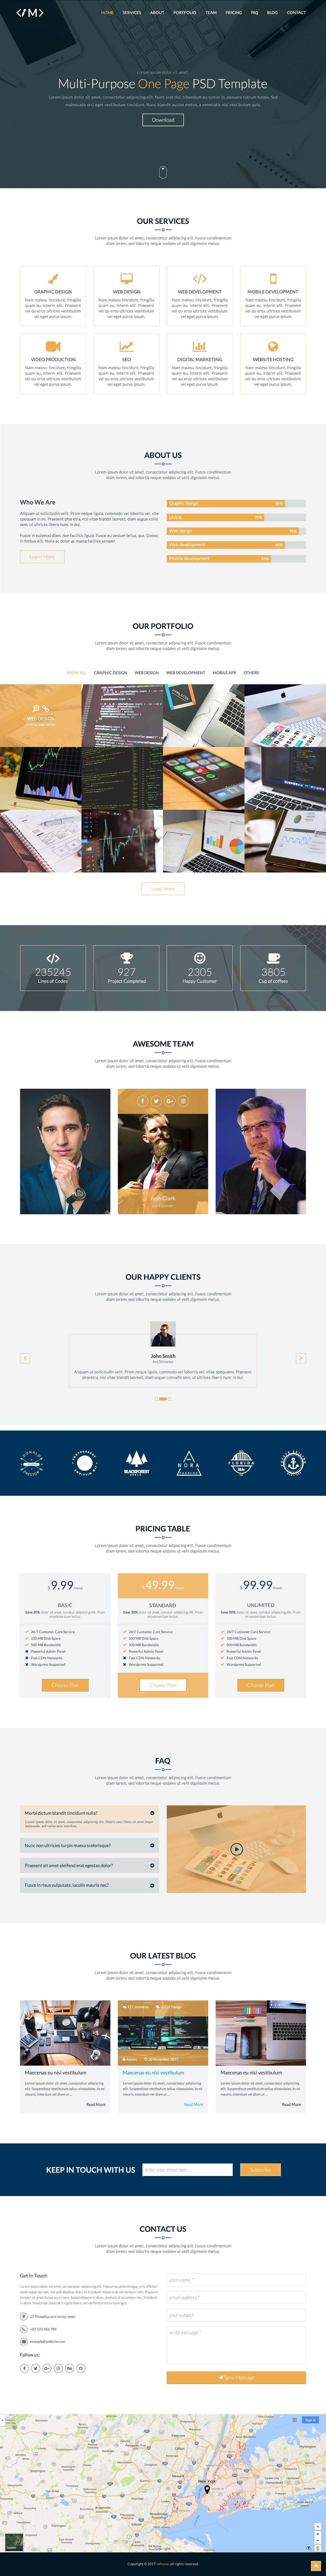 MTheme - Multi-Purpose One Page PSD Template Screenshot 13